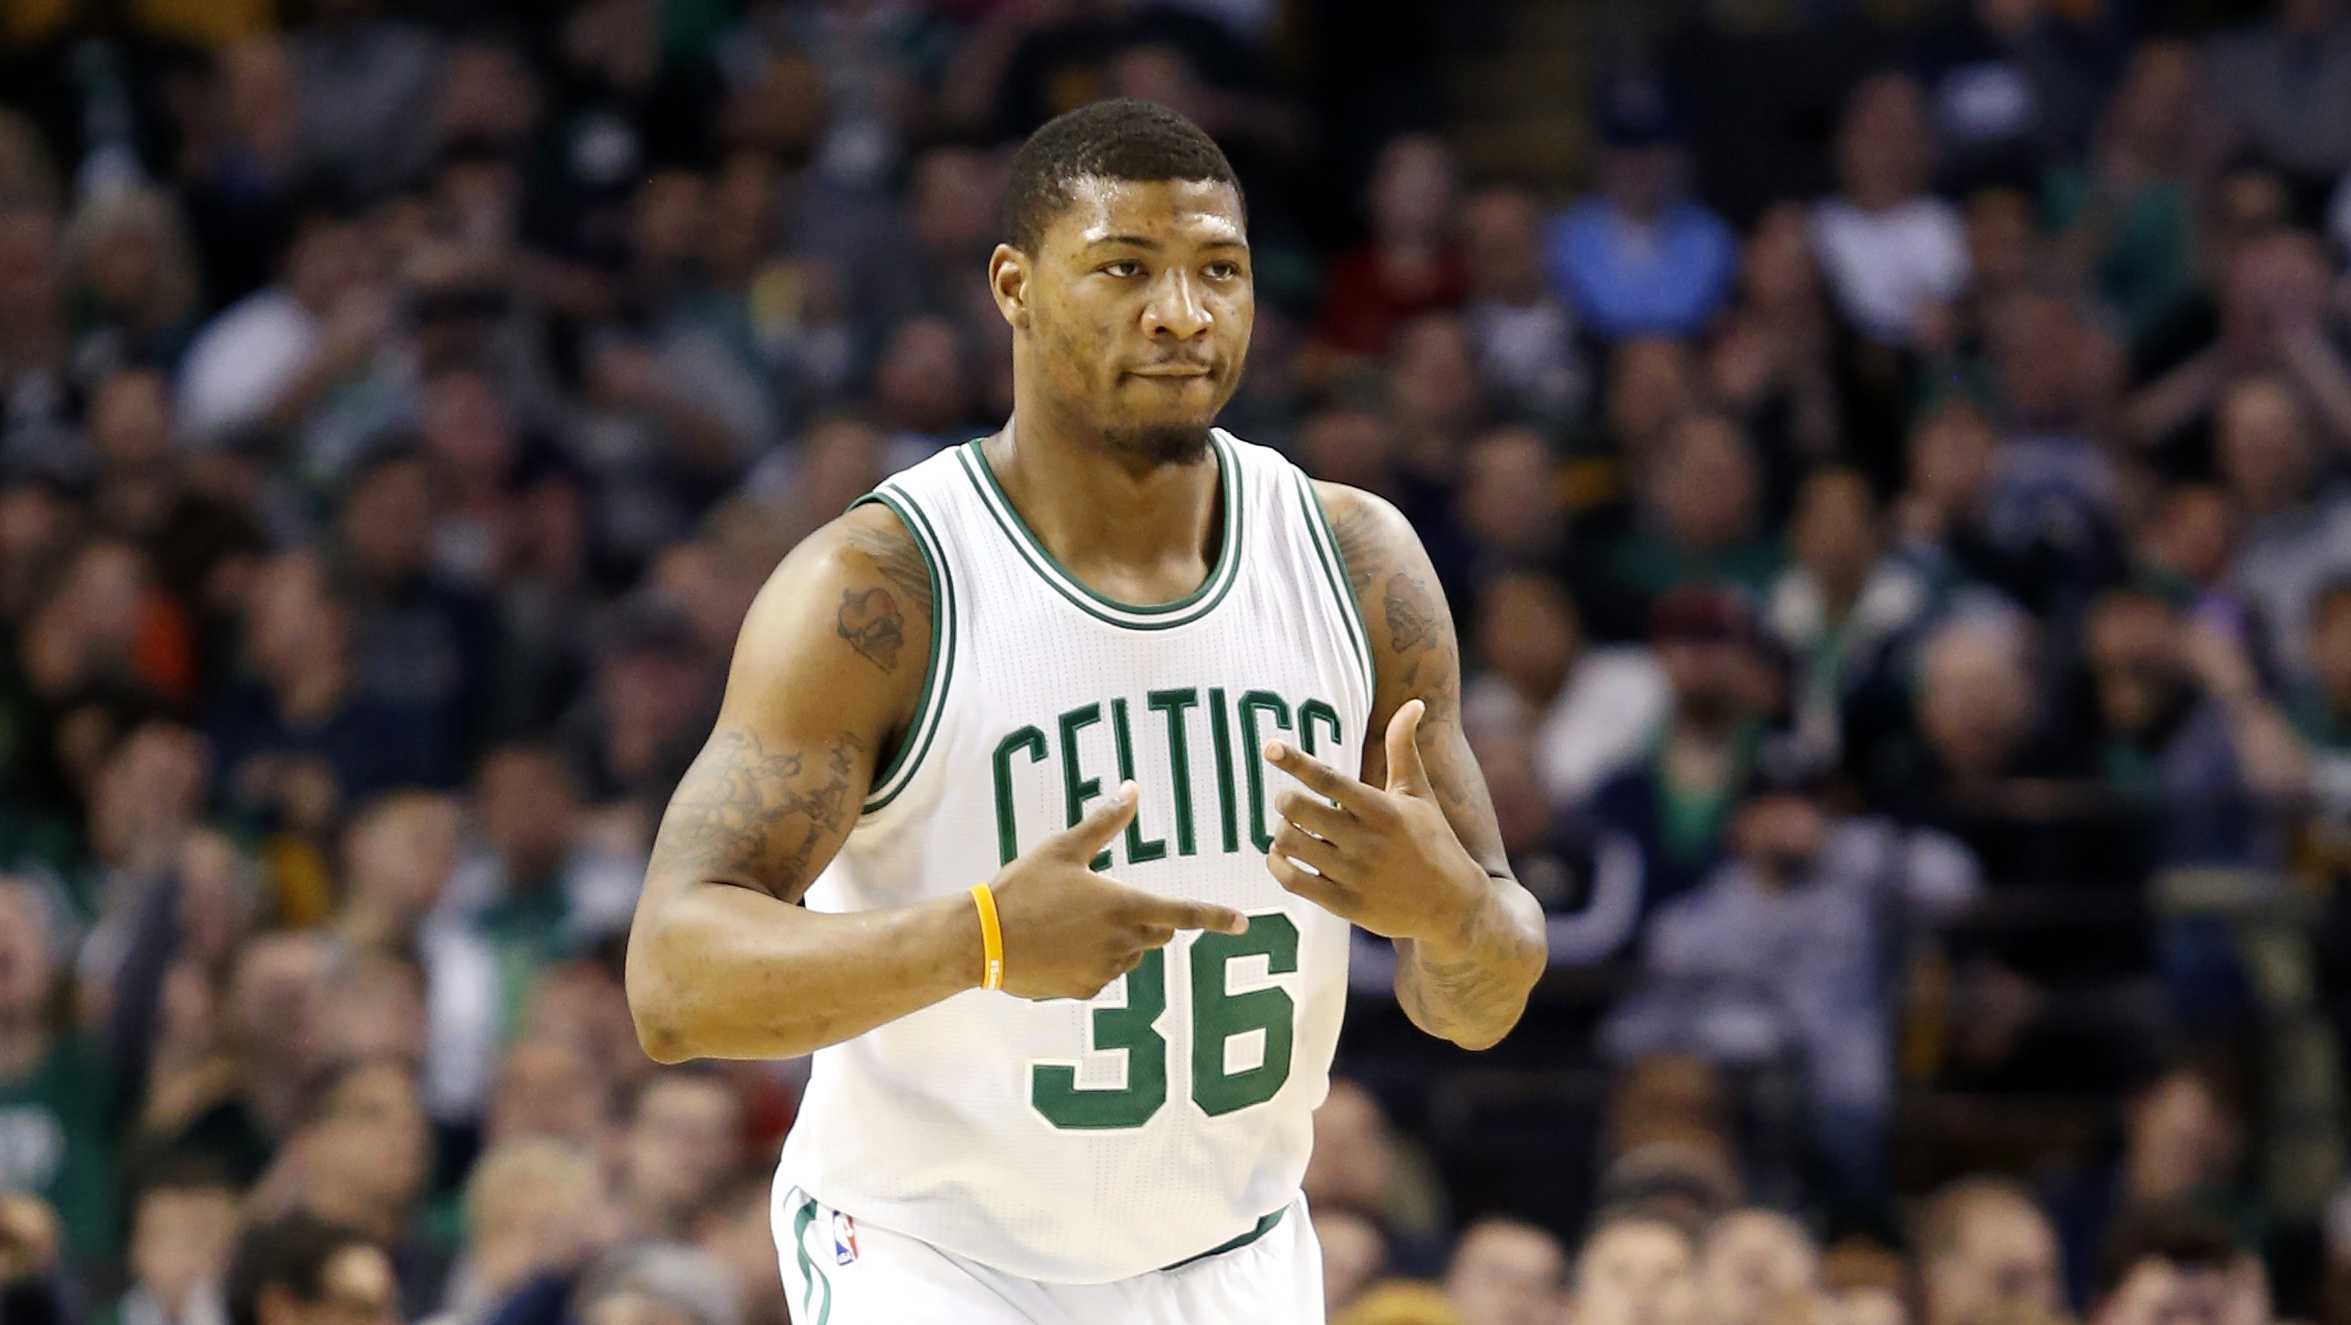 Celtics shuffle lineup with Green starting over Johnson